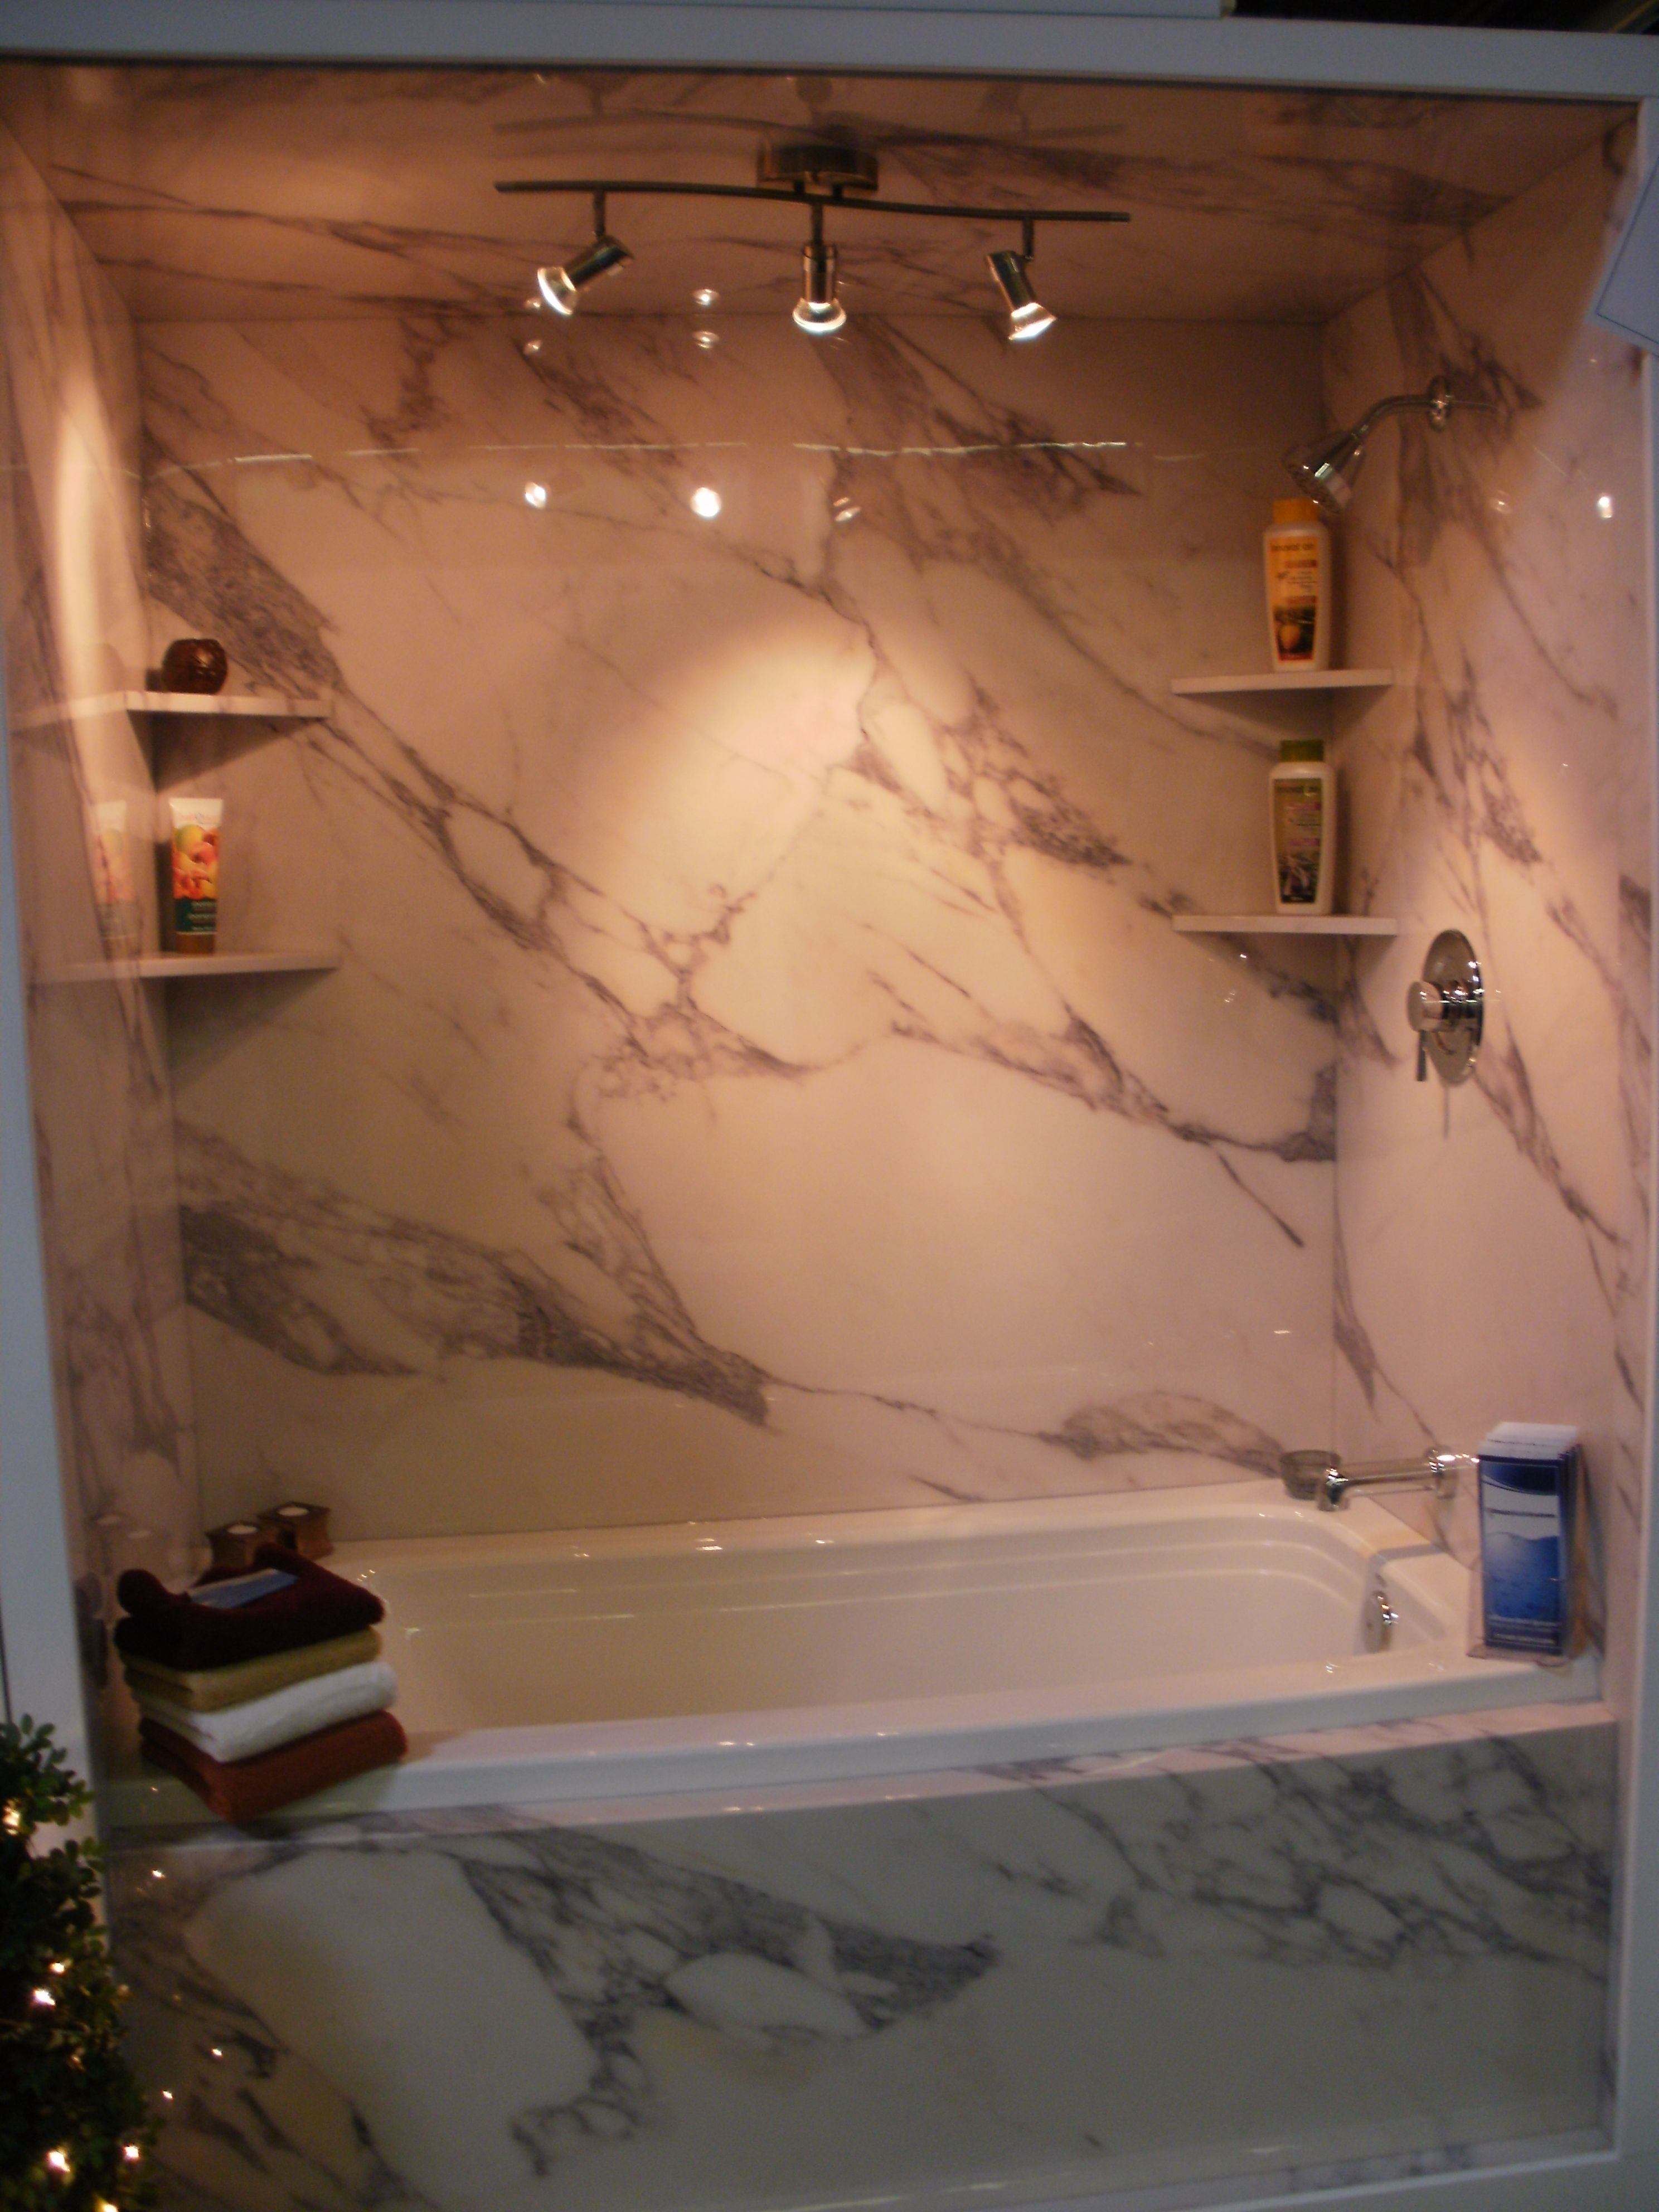 Calcutta Gold - Wall surround with shelves. | Sentrel - 1 Day Bath ...